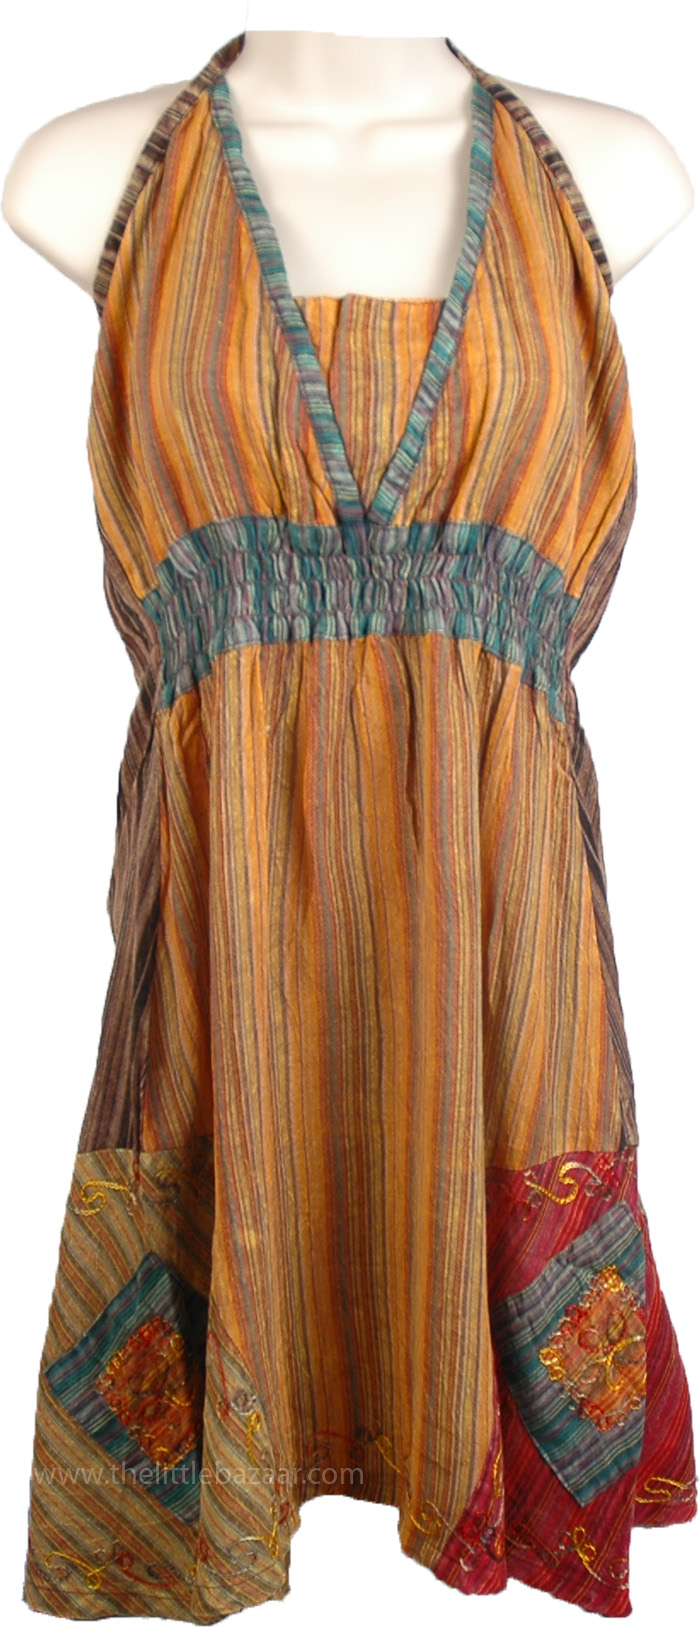 Patchwork Embroidered Halter Top, Sexy Lady Boho Halter Neck Top in Cotton